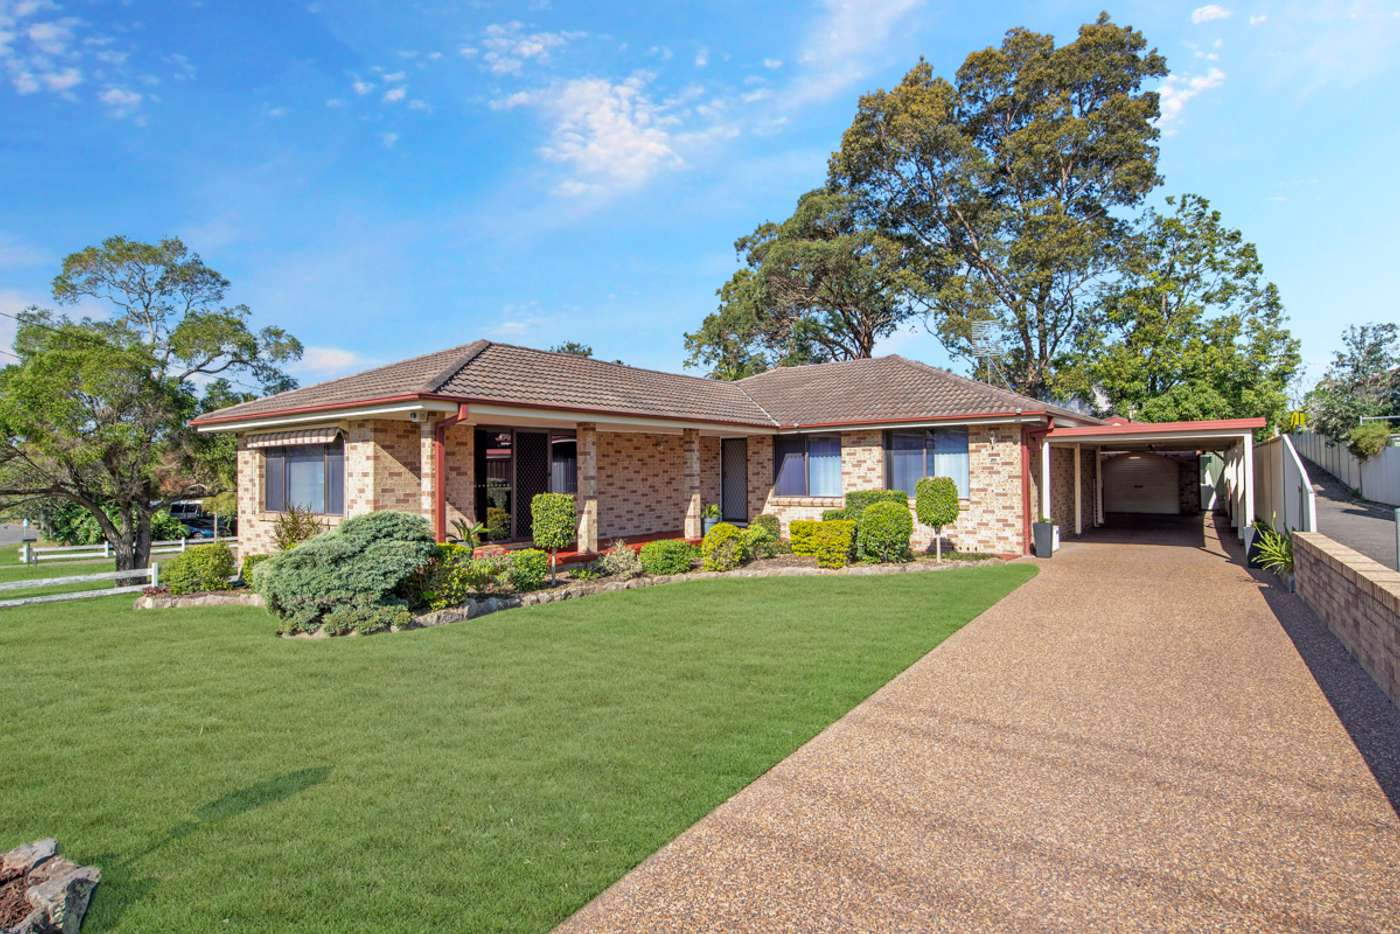 Main view of Homely house listing, 190 Aries Way, Elermore Vale NSW 2287